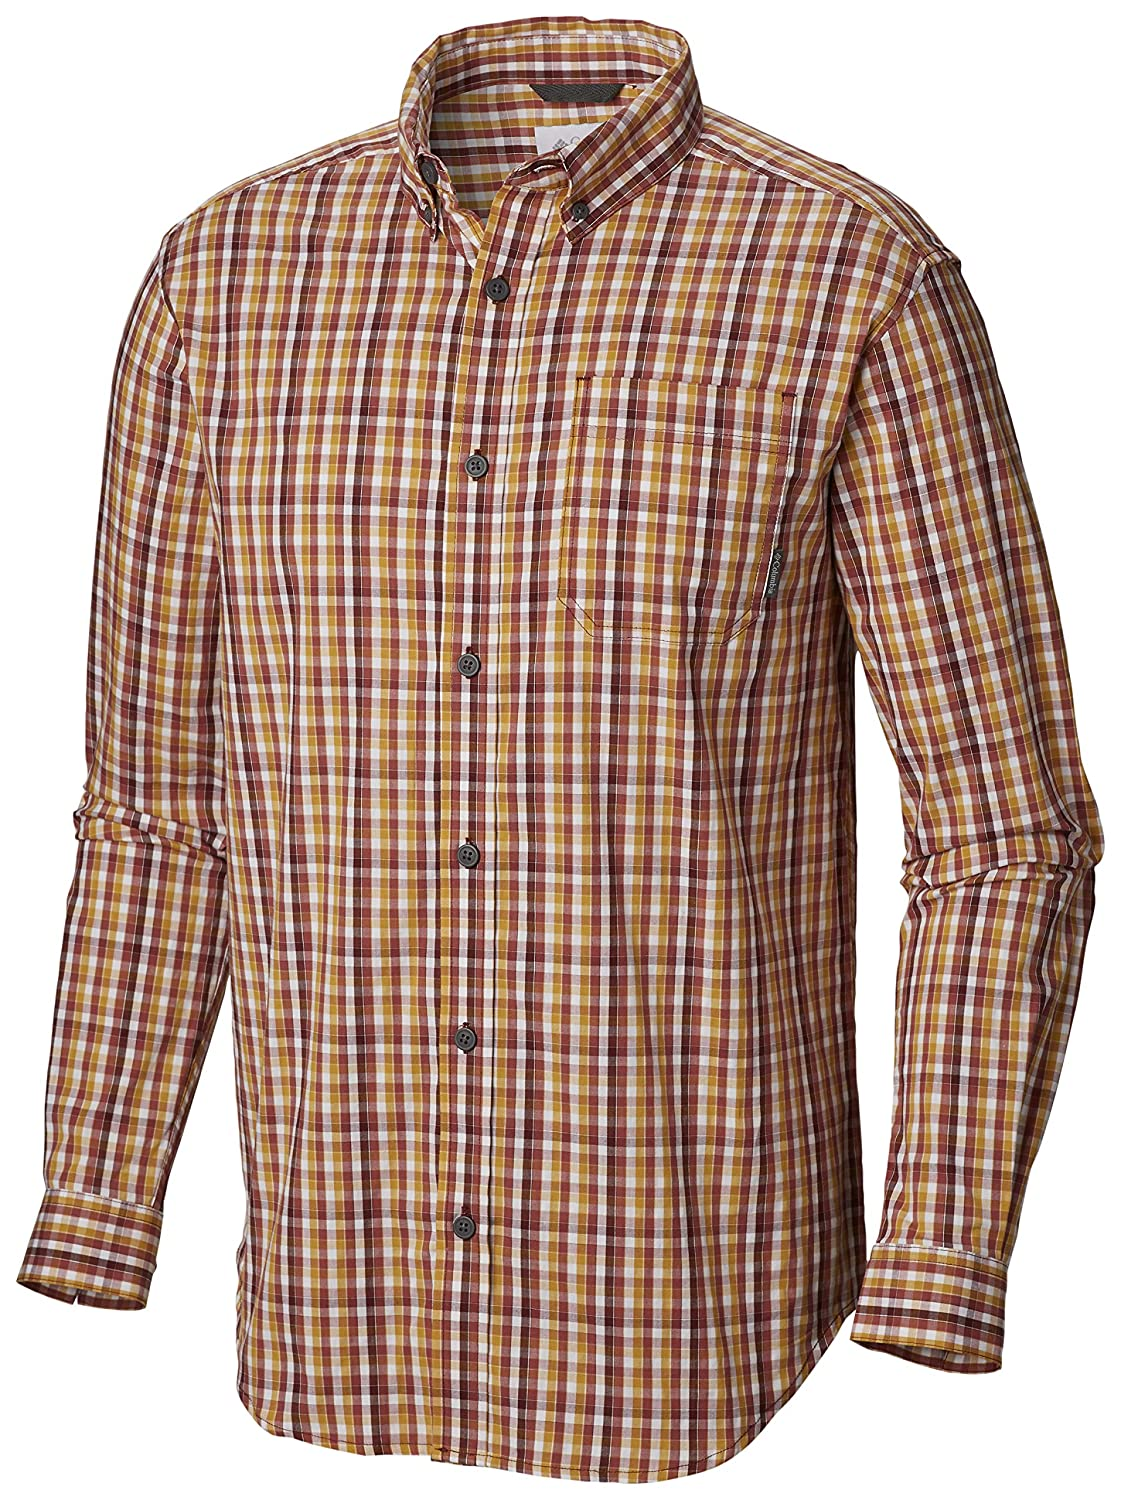 Tapestry Multi Gingham XXL Columbia Homme 1552054 Manches Longues Chemisier